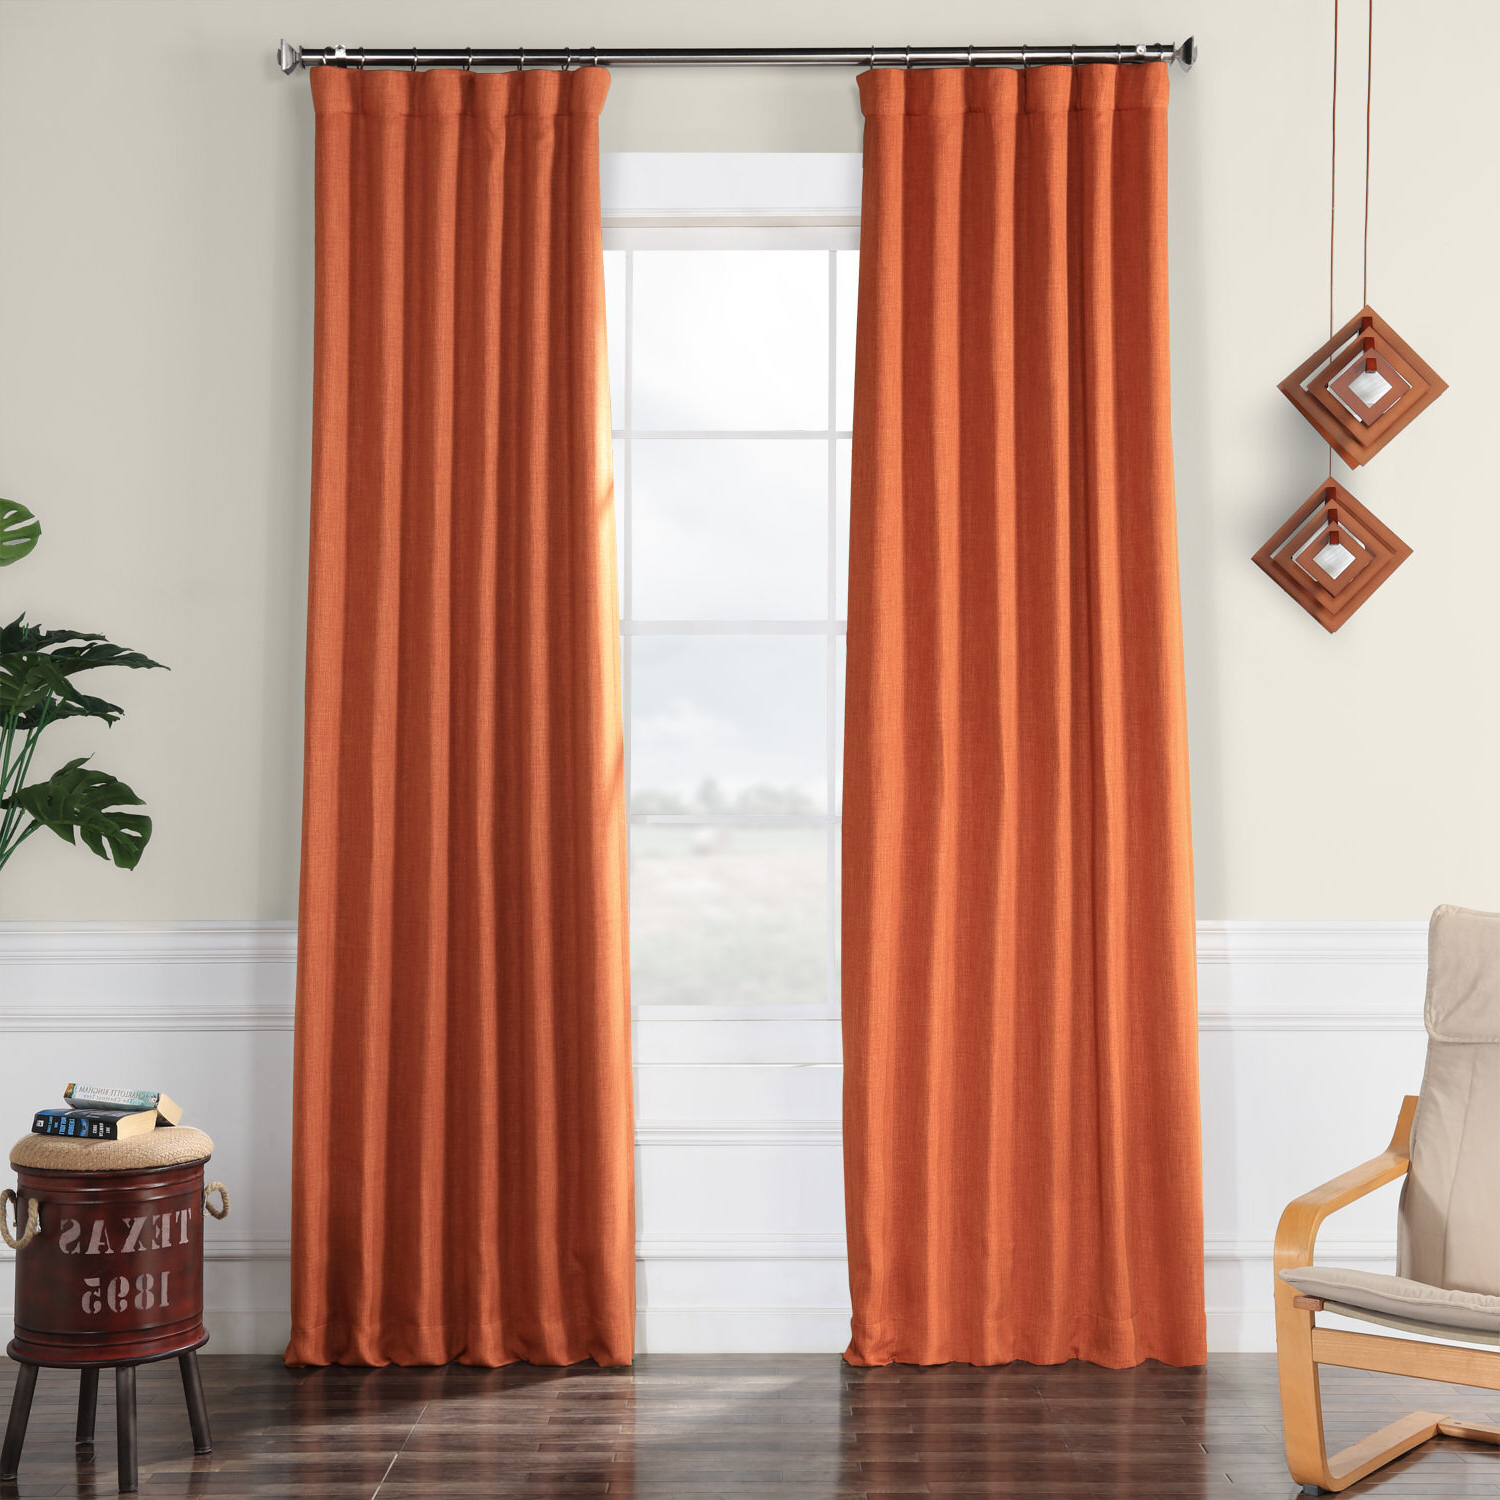 2020 Clem Faux Linen Blackout Single Curtain Panel Pertaining To Tuscan Thermal Backed Blackout Curtain Panel Pairs (View 7 of 20)